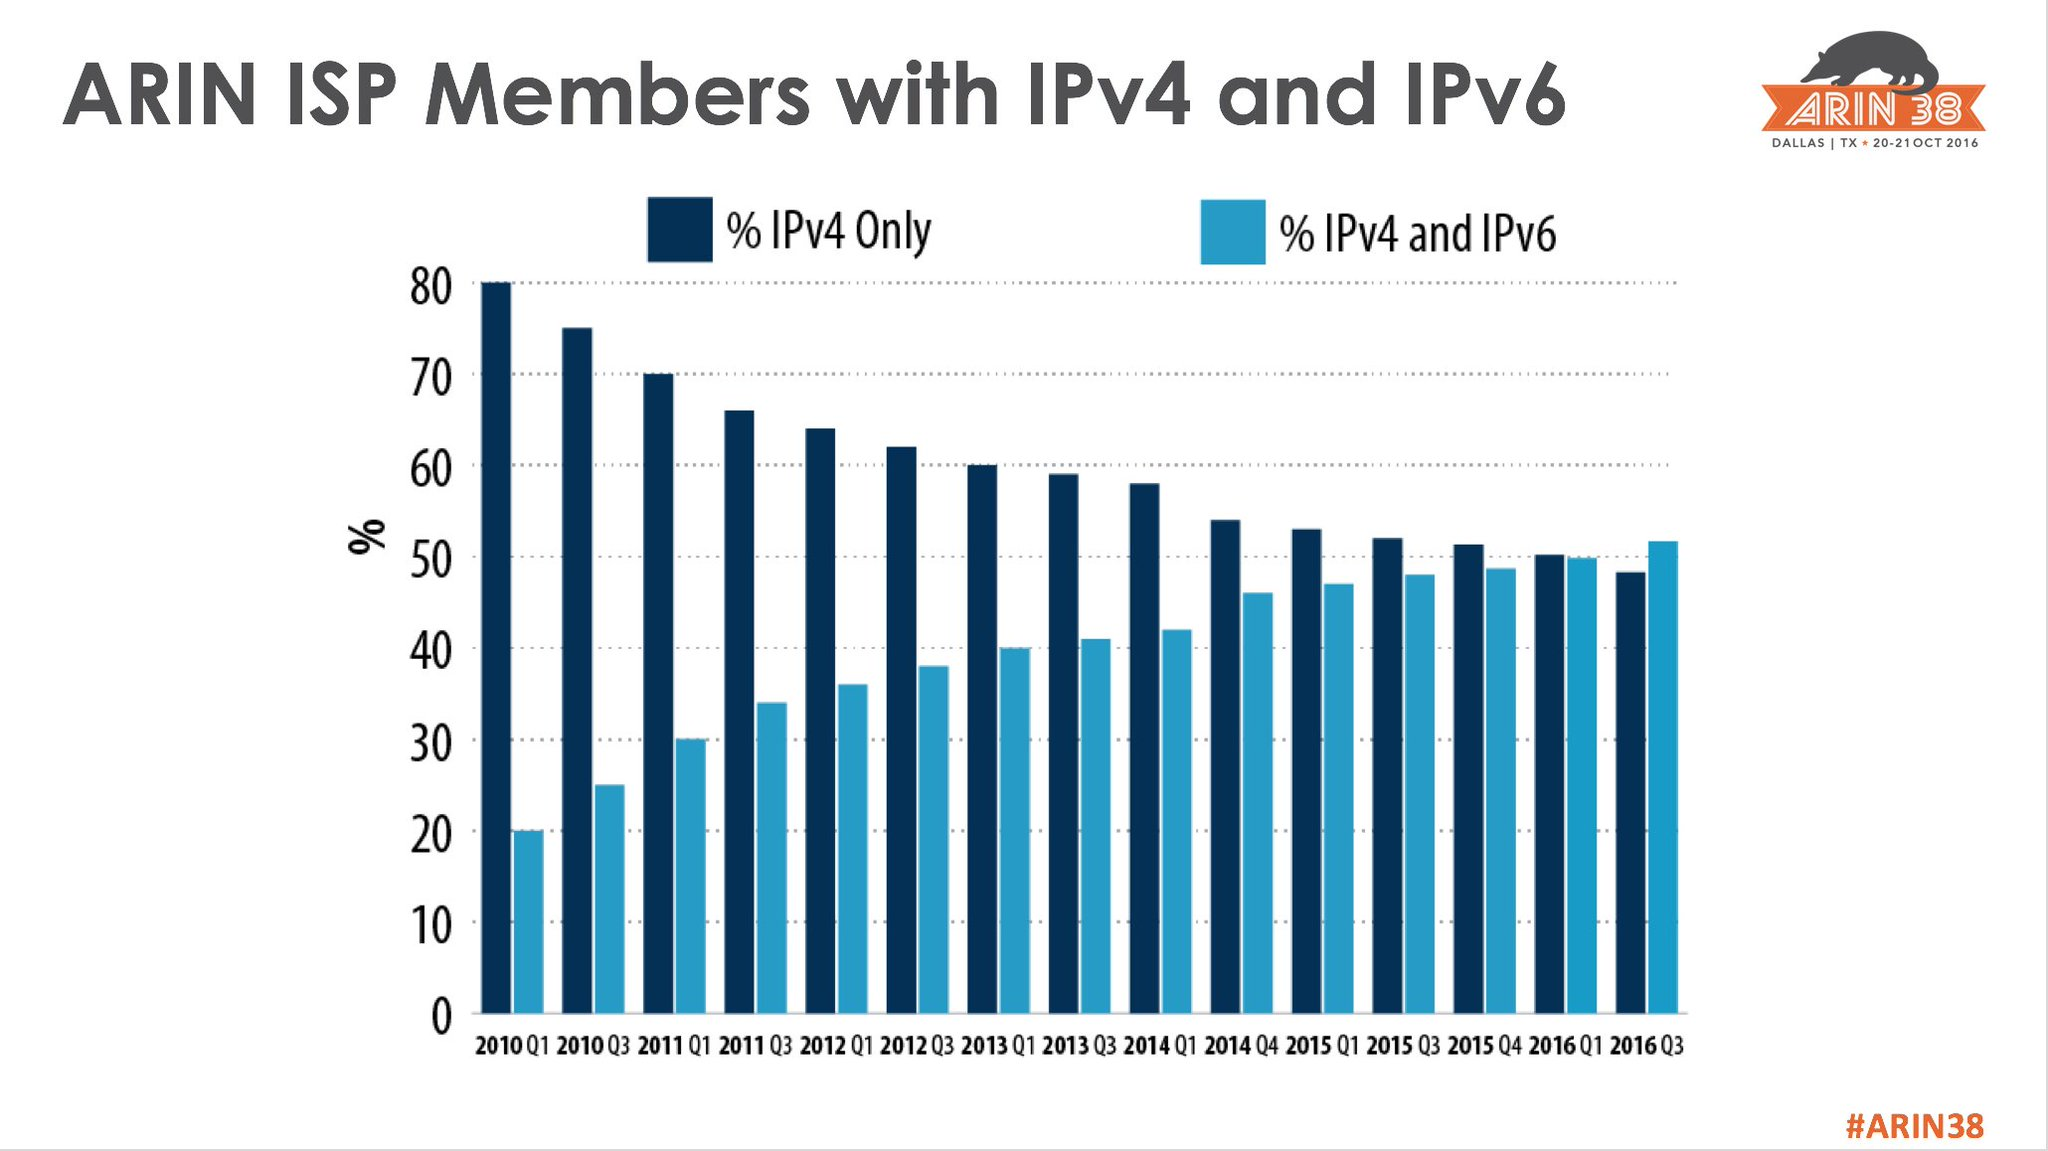 Good news! #ARIN38 For the 1st time, our percentage of ISP members with both #IPv4 AND #IPv6 holdings is more than IPv4-only https://t.co/M7jjVHIsTh